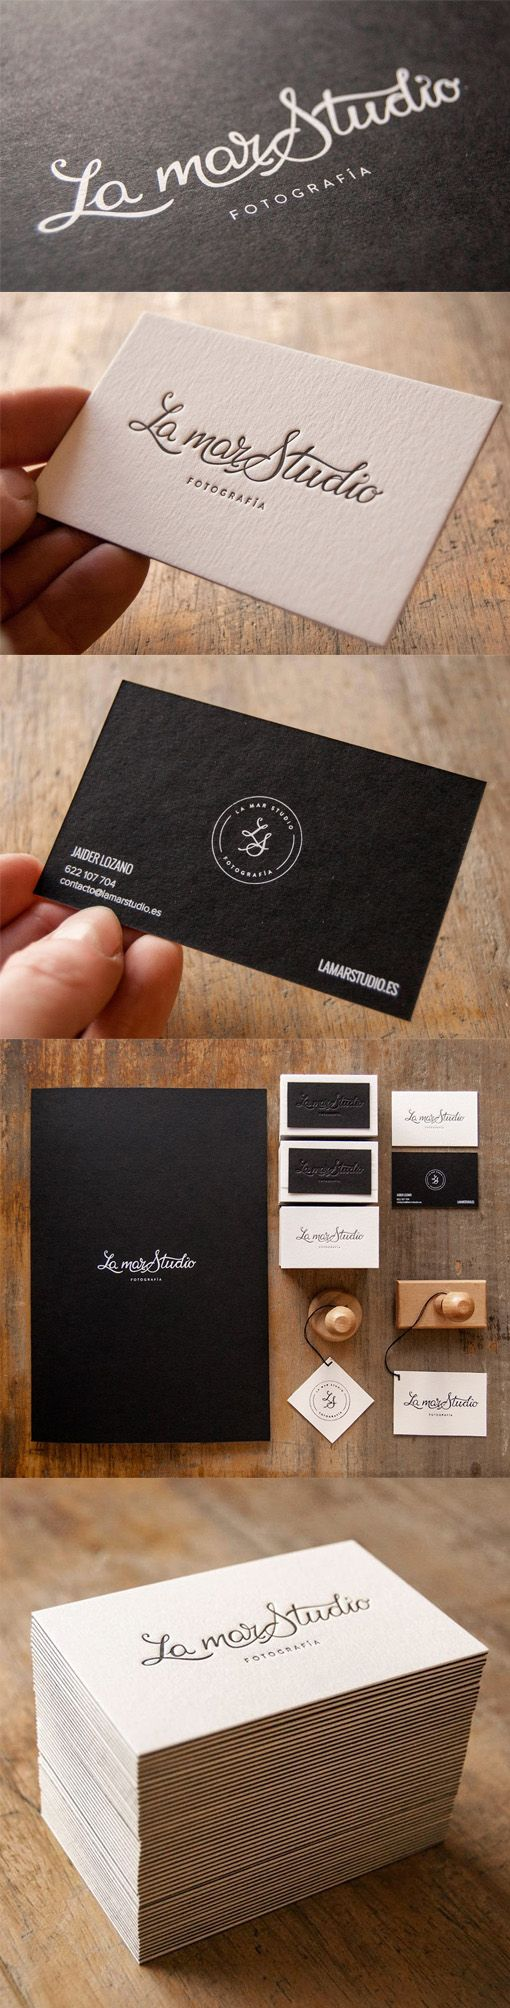 Elegantly Simple Black And White Typographic Business Card For A ...